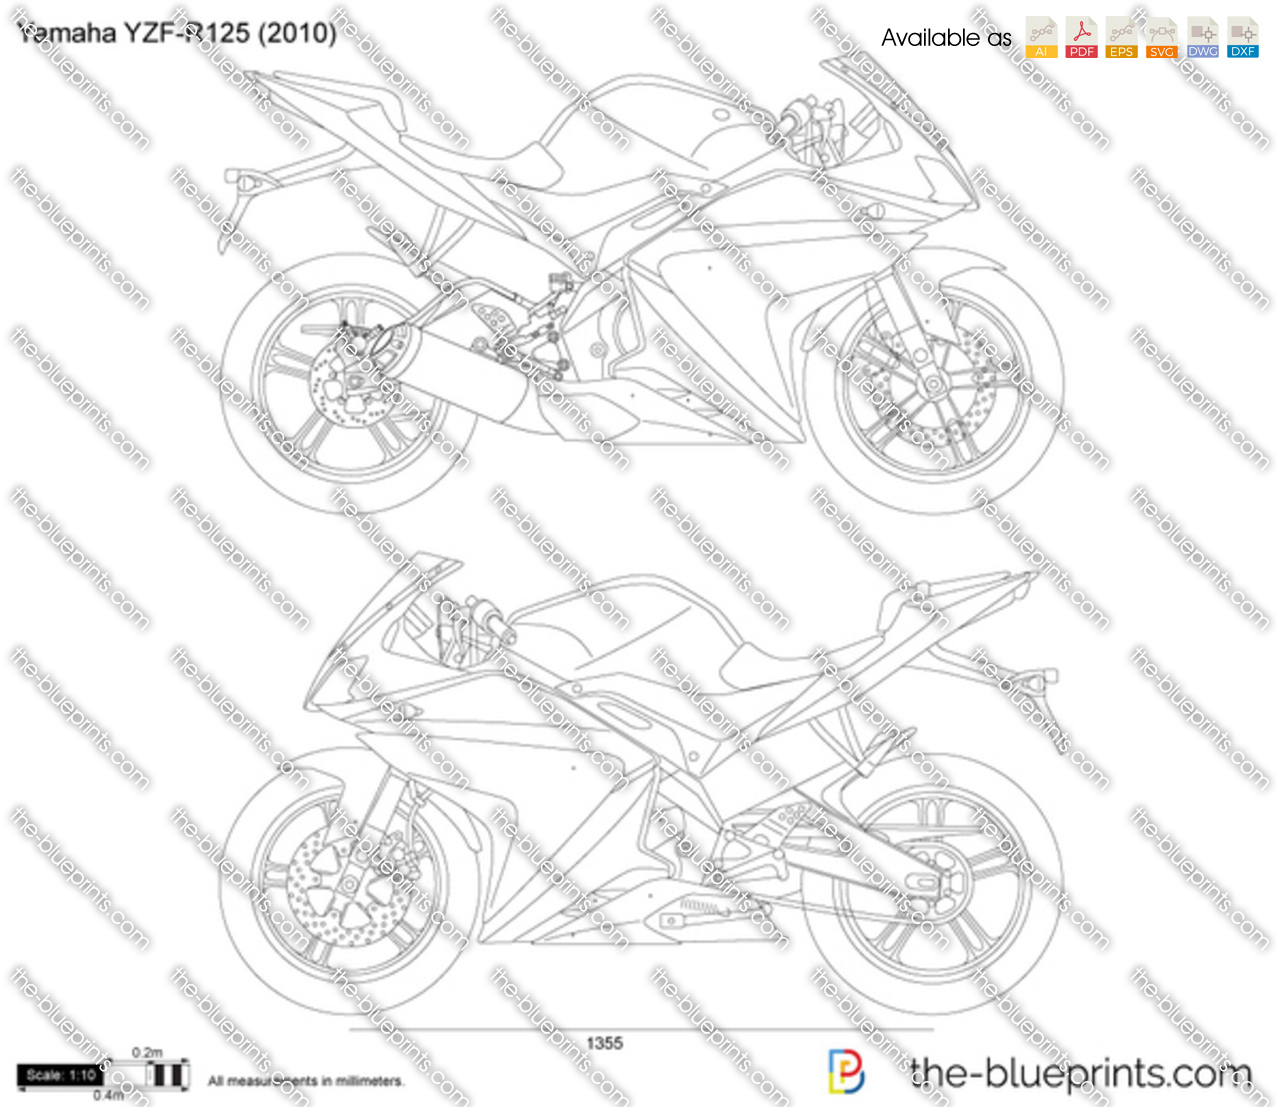 Yamaha yzf r125 vector drawing for Where to get blueprints printed